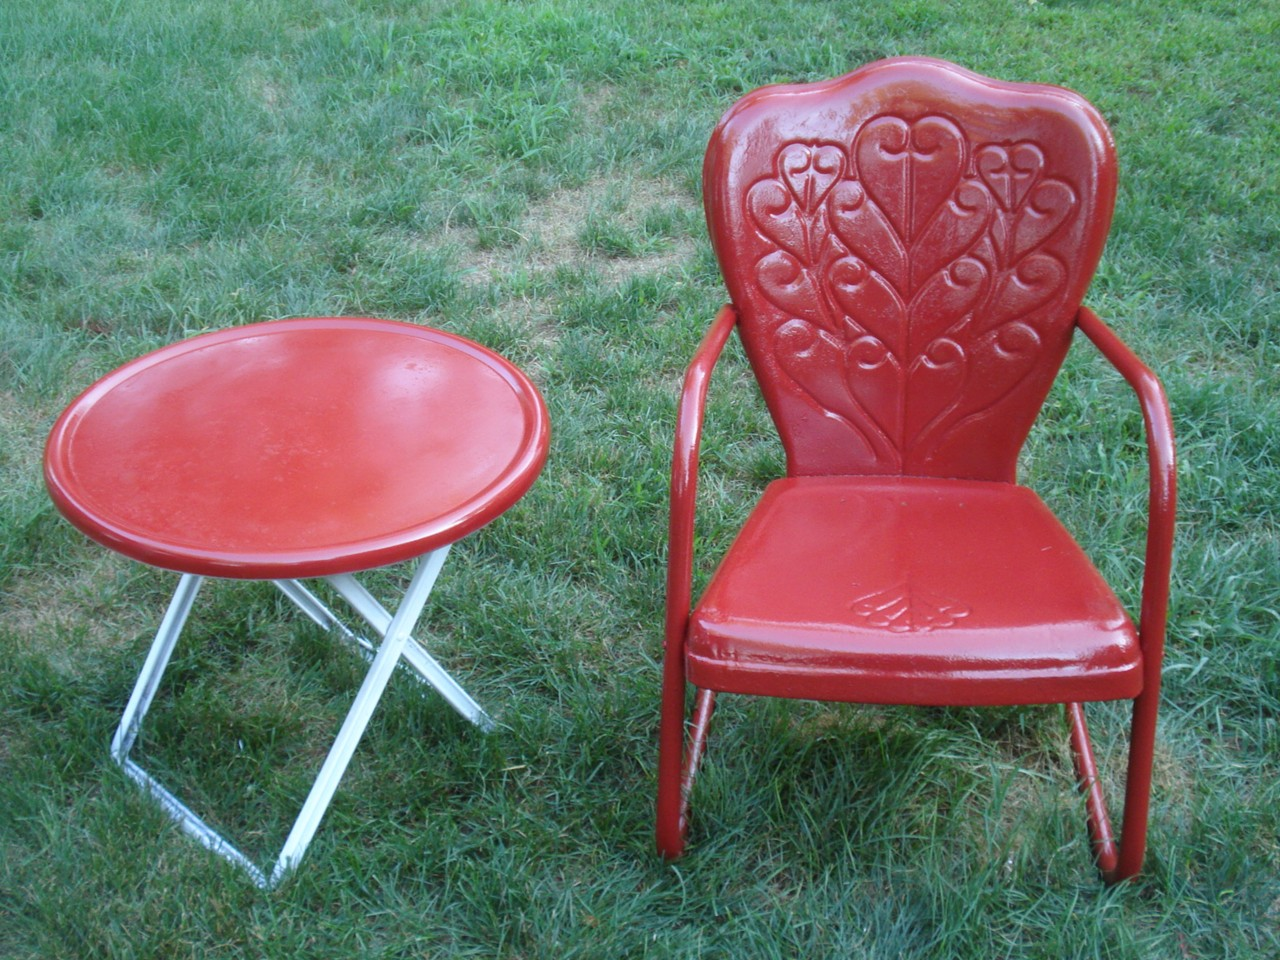 Retro Patio Chairs Retro Patio Chairs Amazing Chairs Retro